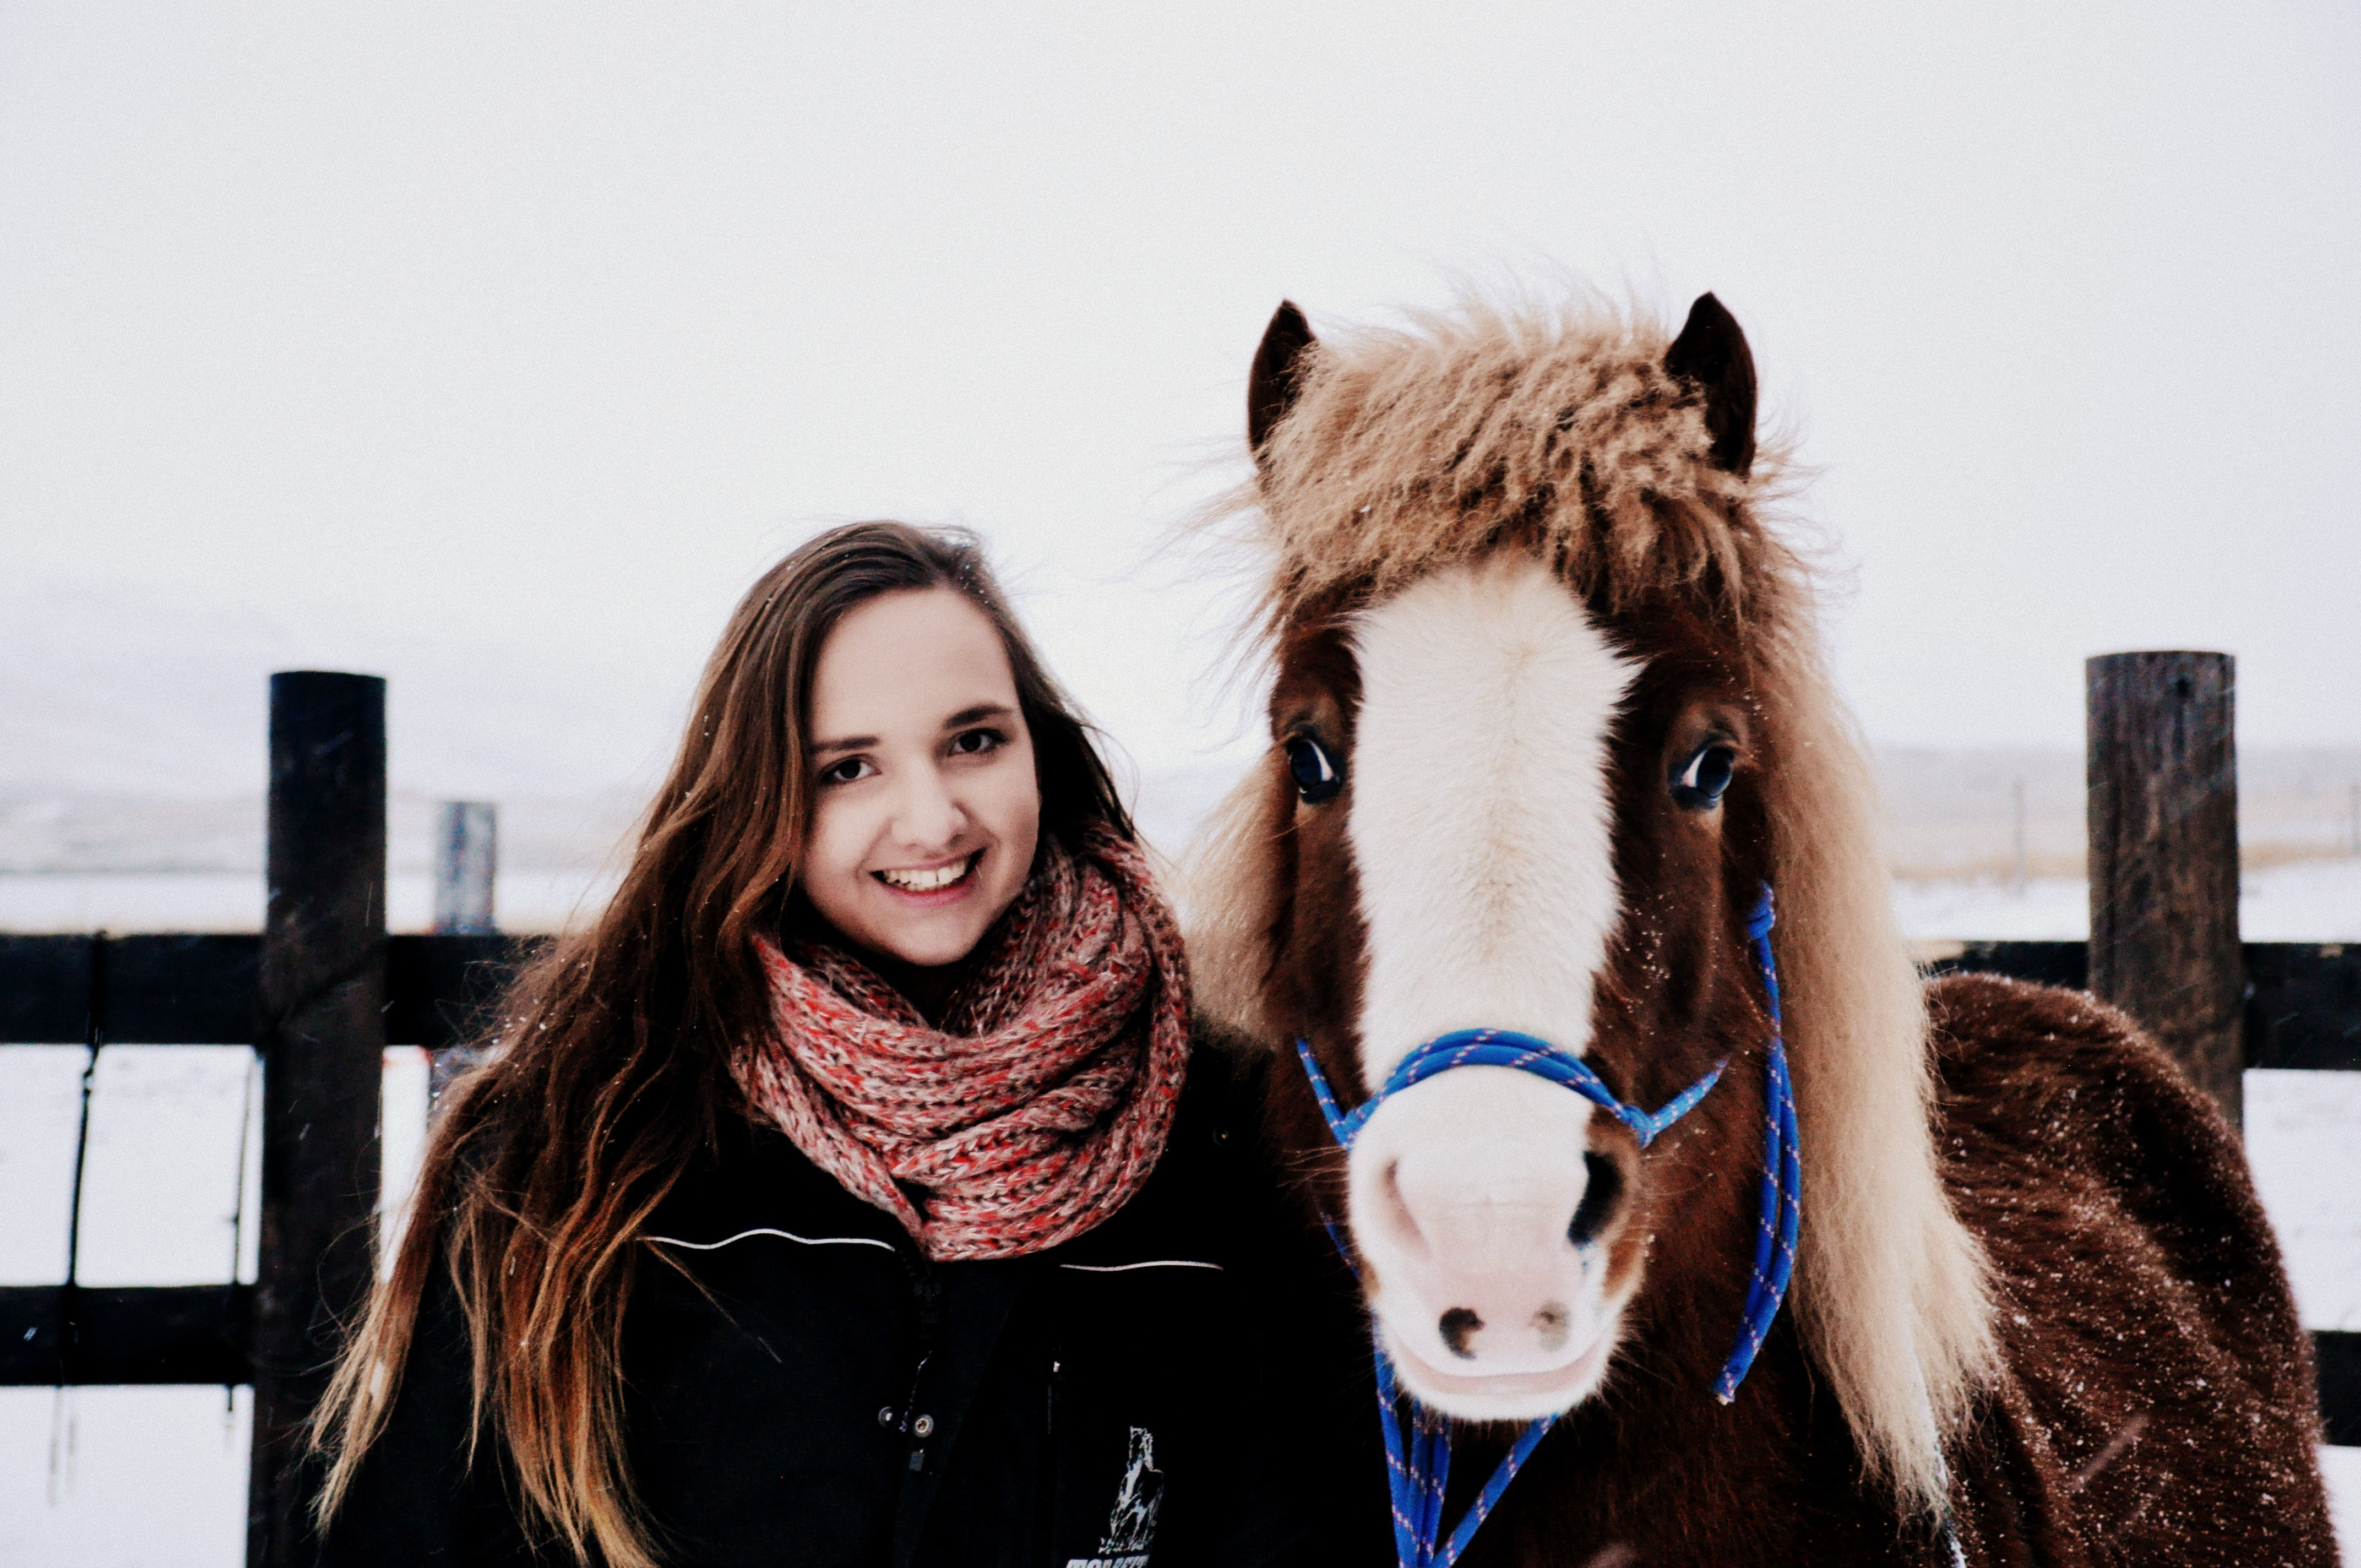 Come and meet the friendly Icelandic horse on this photography tour.